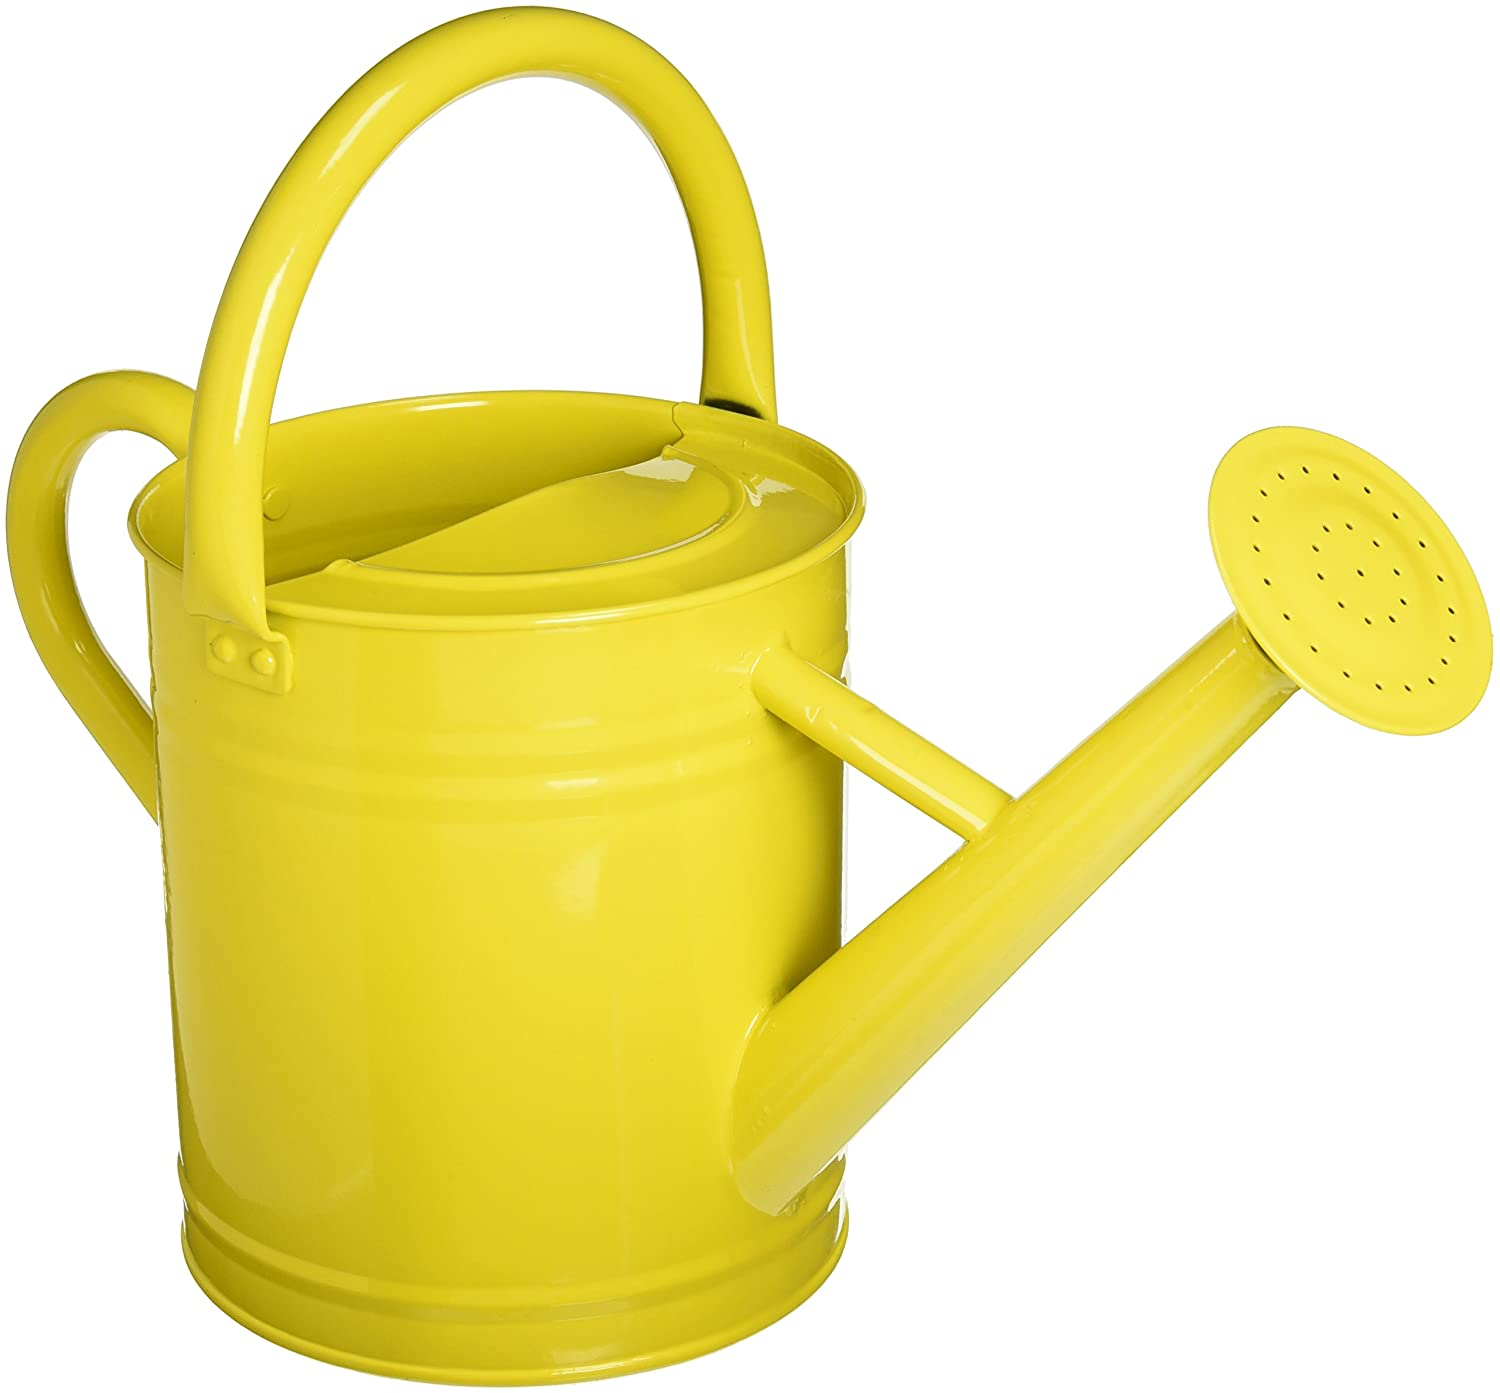 Top 10 Best Watering Cans